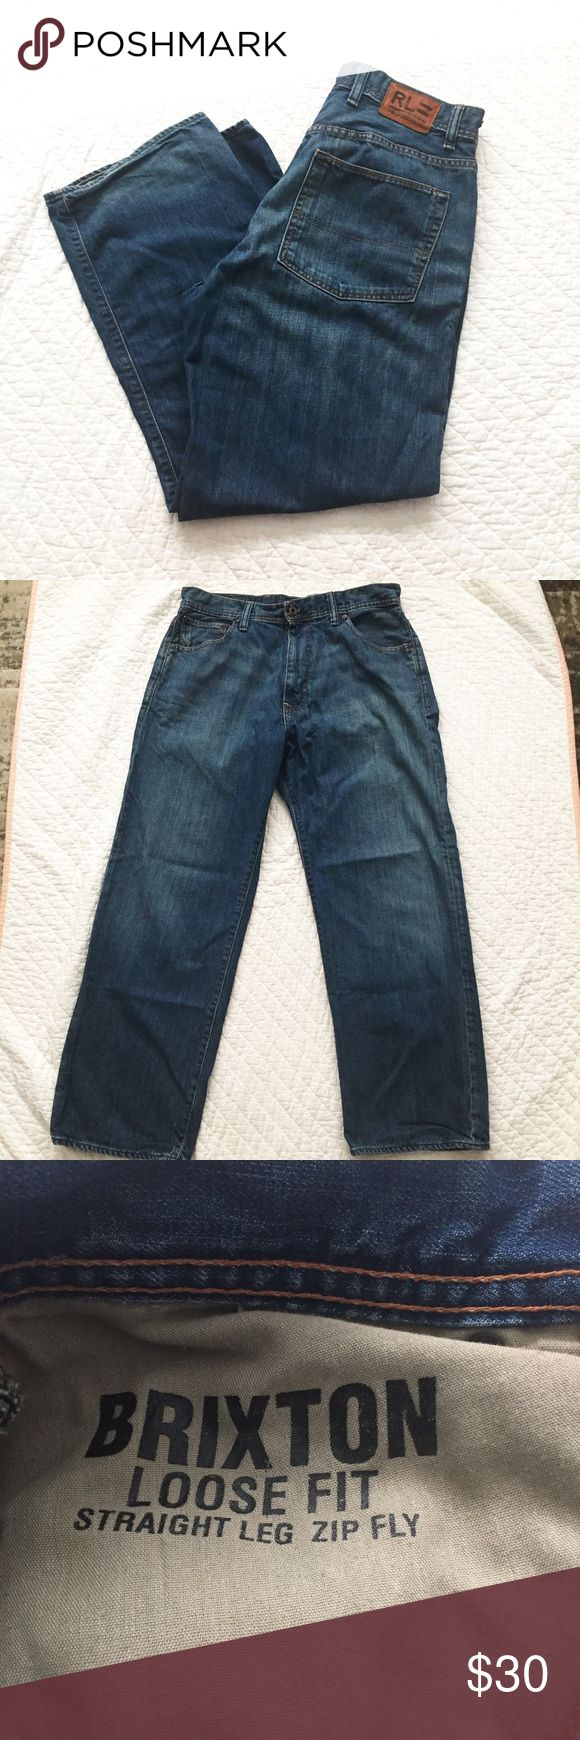 Polo Jeans Sz 34x32 Brixton Loose Fit Jeans Ralph Lauren Polo Jeans. Brixton fit. Loose fit with straight leg and zipper fly. Size 34x32. Medium wash with hints of tan. VGUC. no fraying at bottoms. Polo by Ralph Lauren Jeans Relaxed